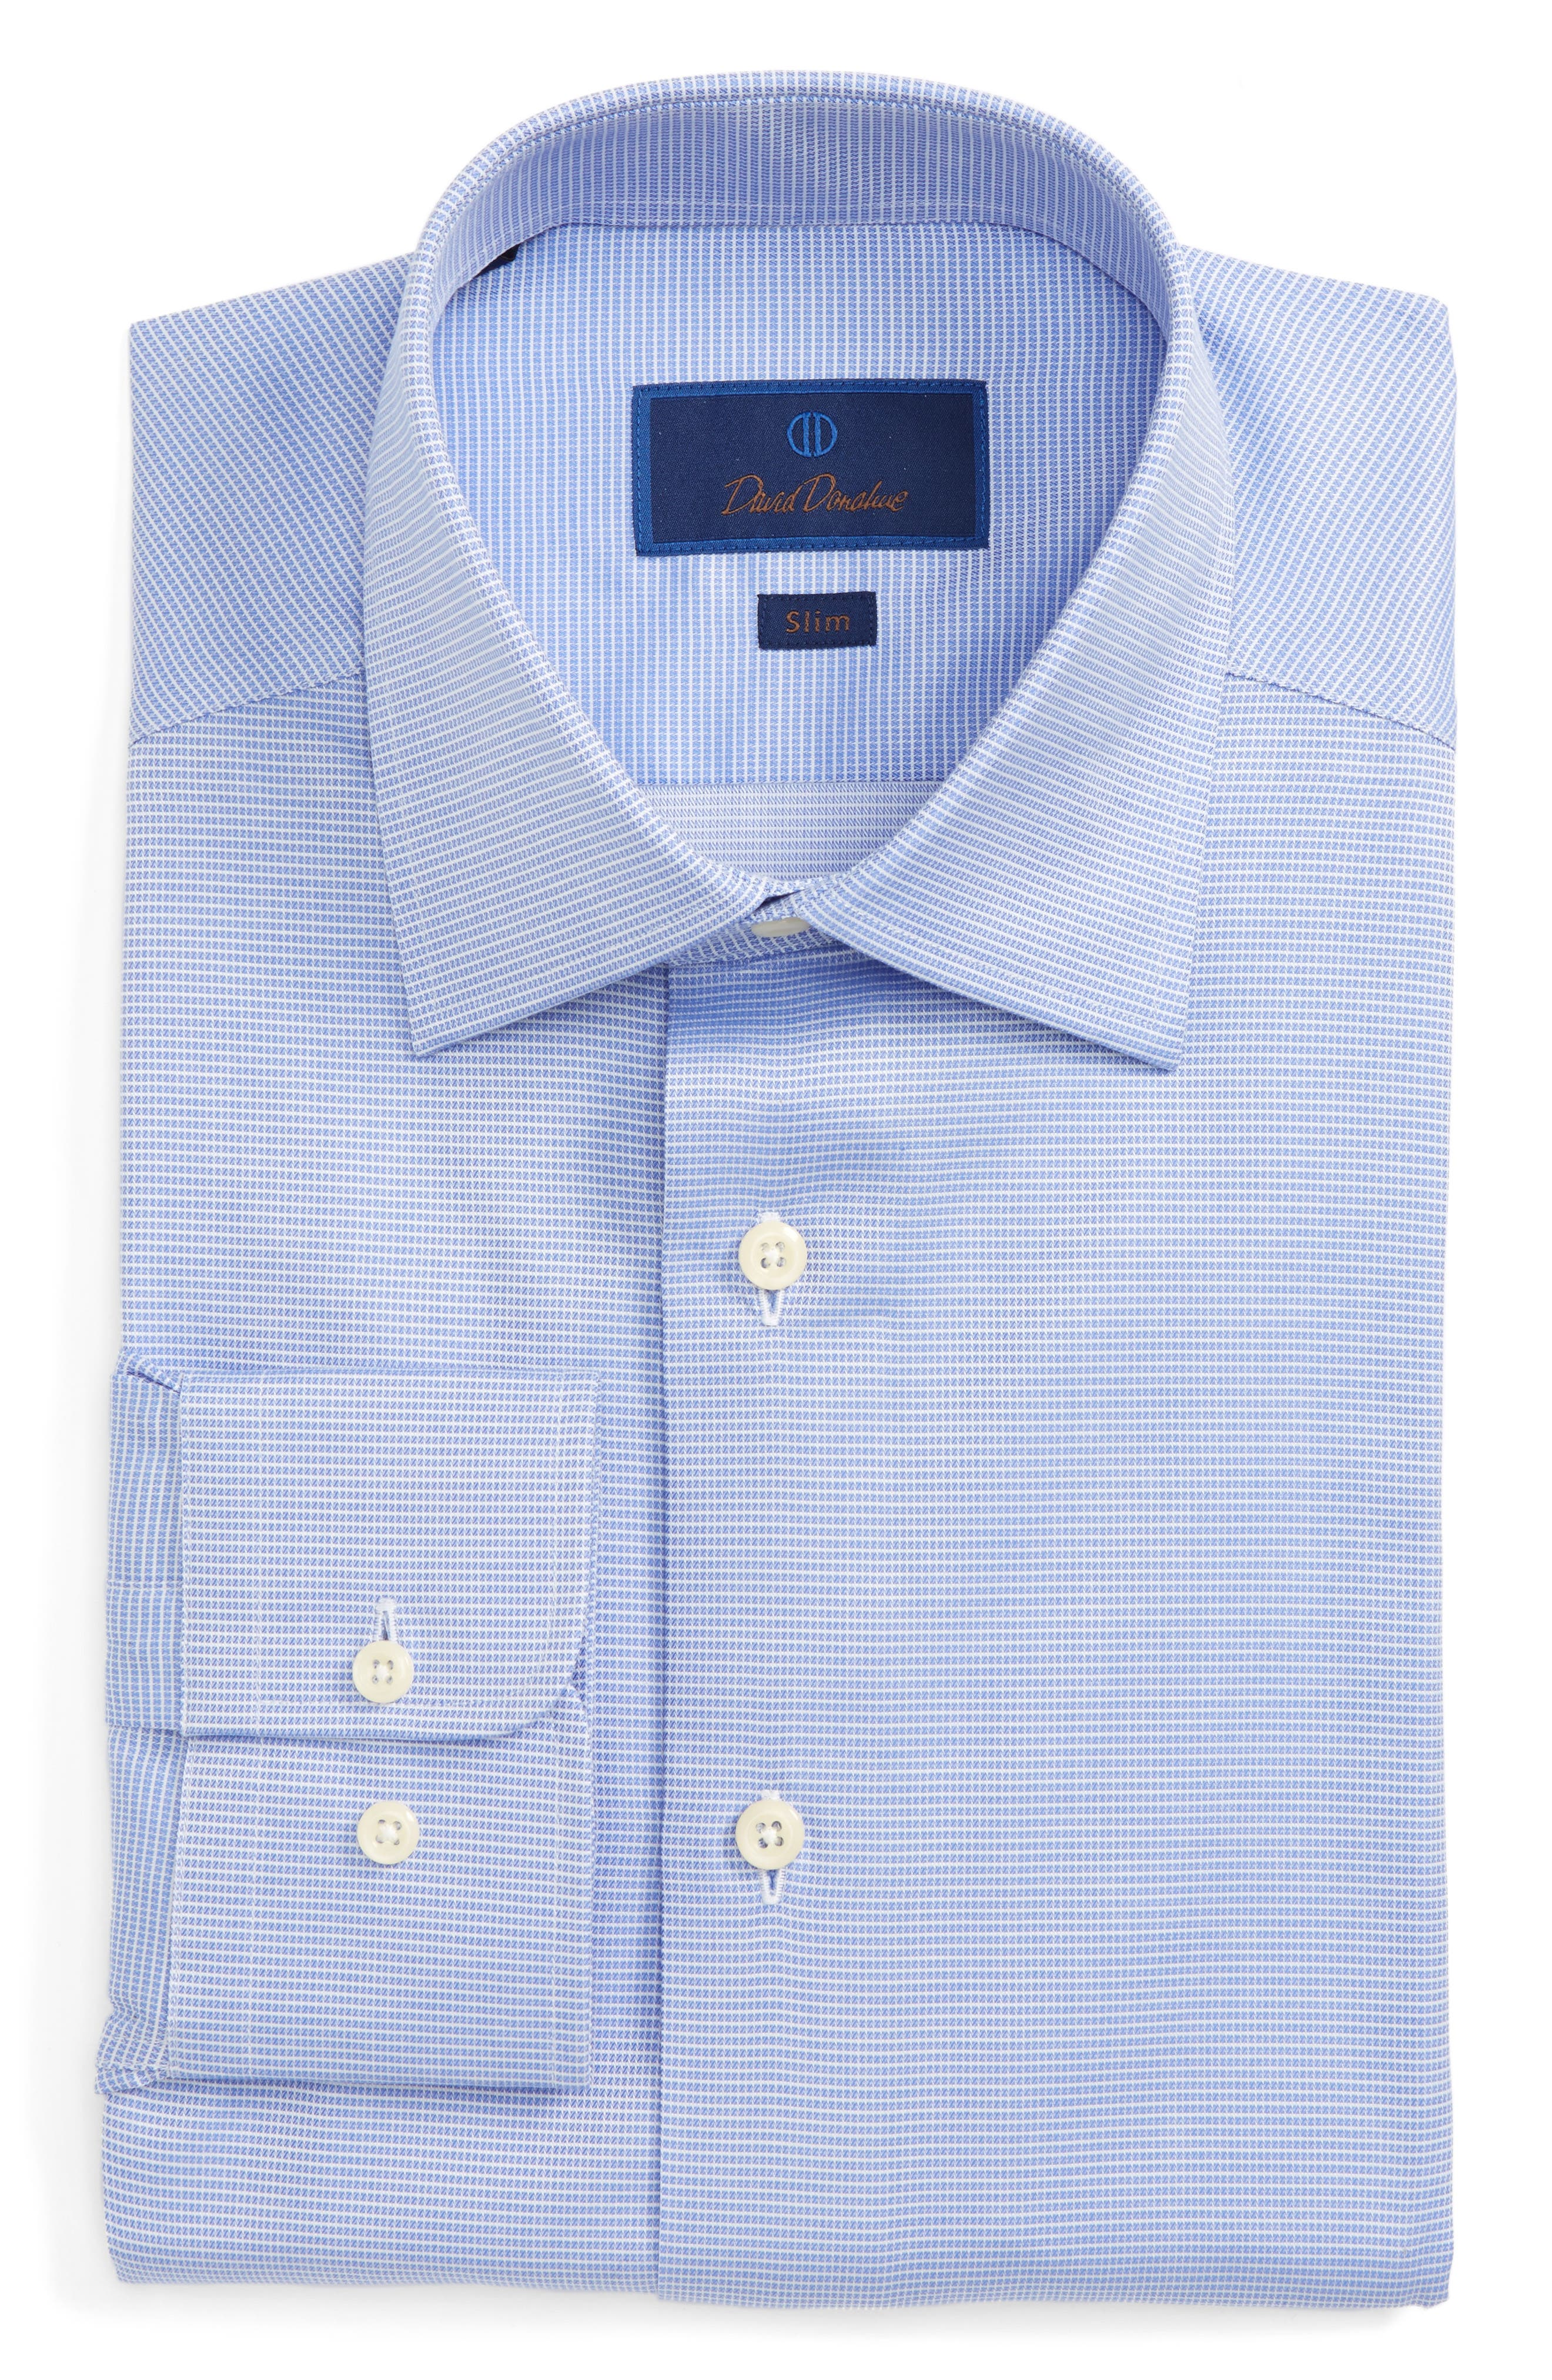 Slim Fit Check Dress Shirt,                         Main,                         color, 423